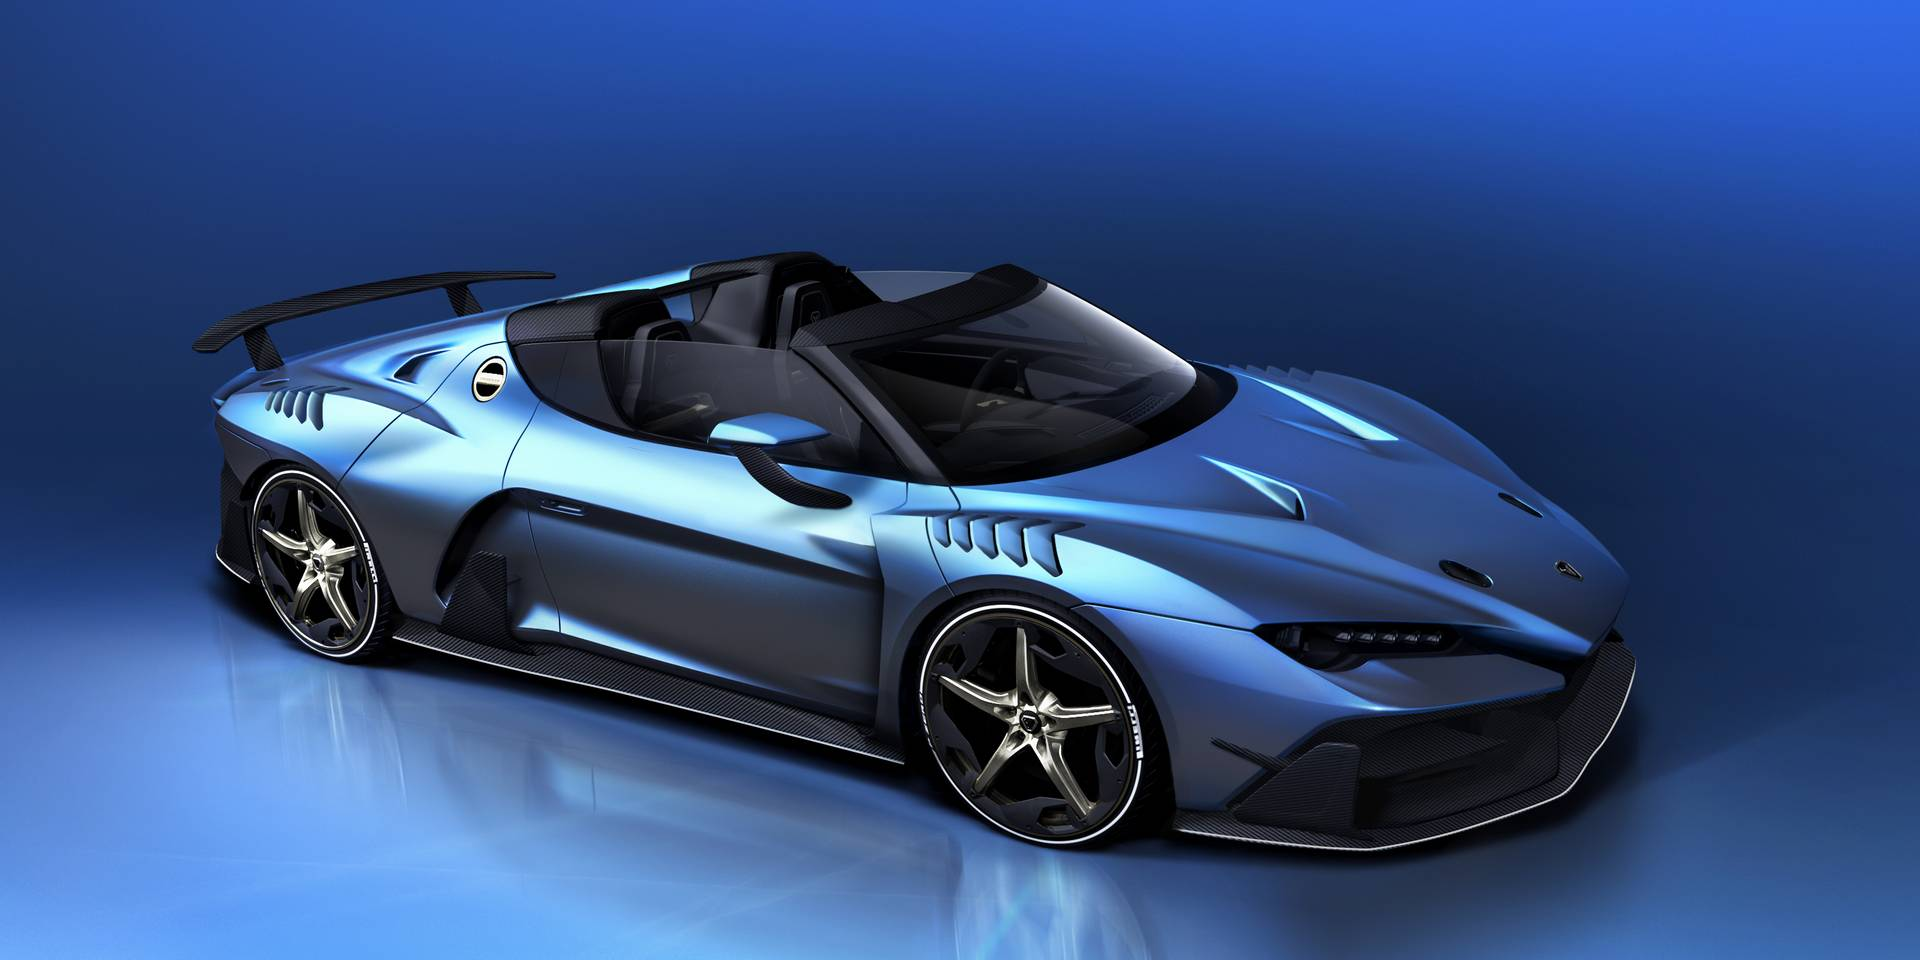 Italdesign Zerouno Convertible